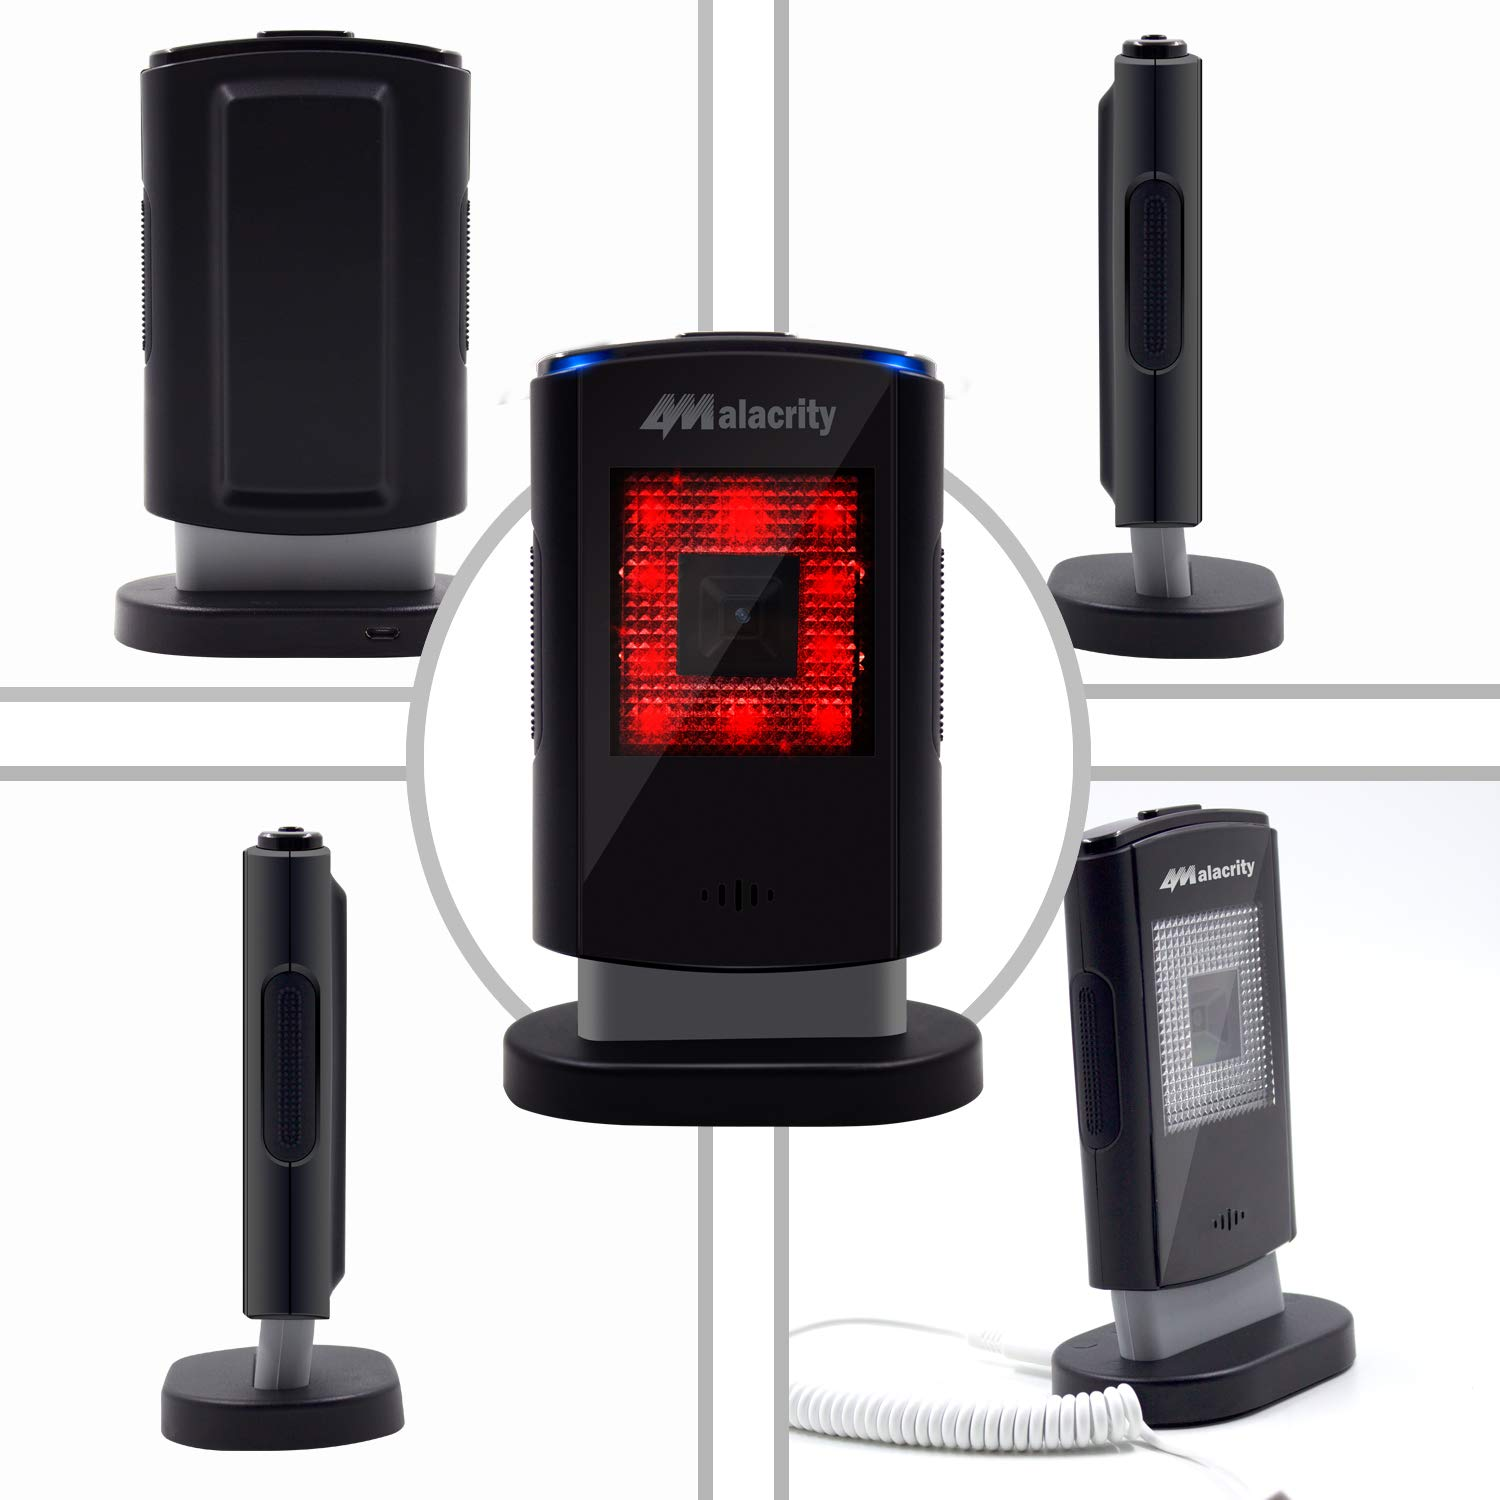 Capture Barcodes from Mobile Phone Screen Omnidirectional Desktop Bar Code Reader with USB Cable Alacrity 9203 Handsfree 2D 1D Wired Barcode Scanner